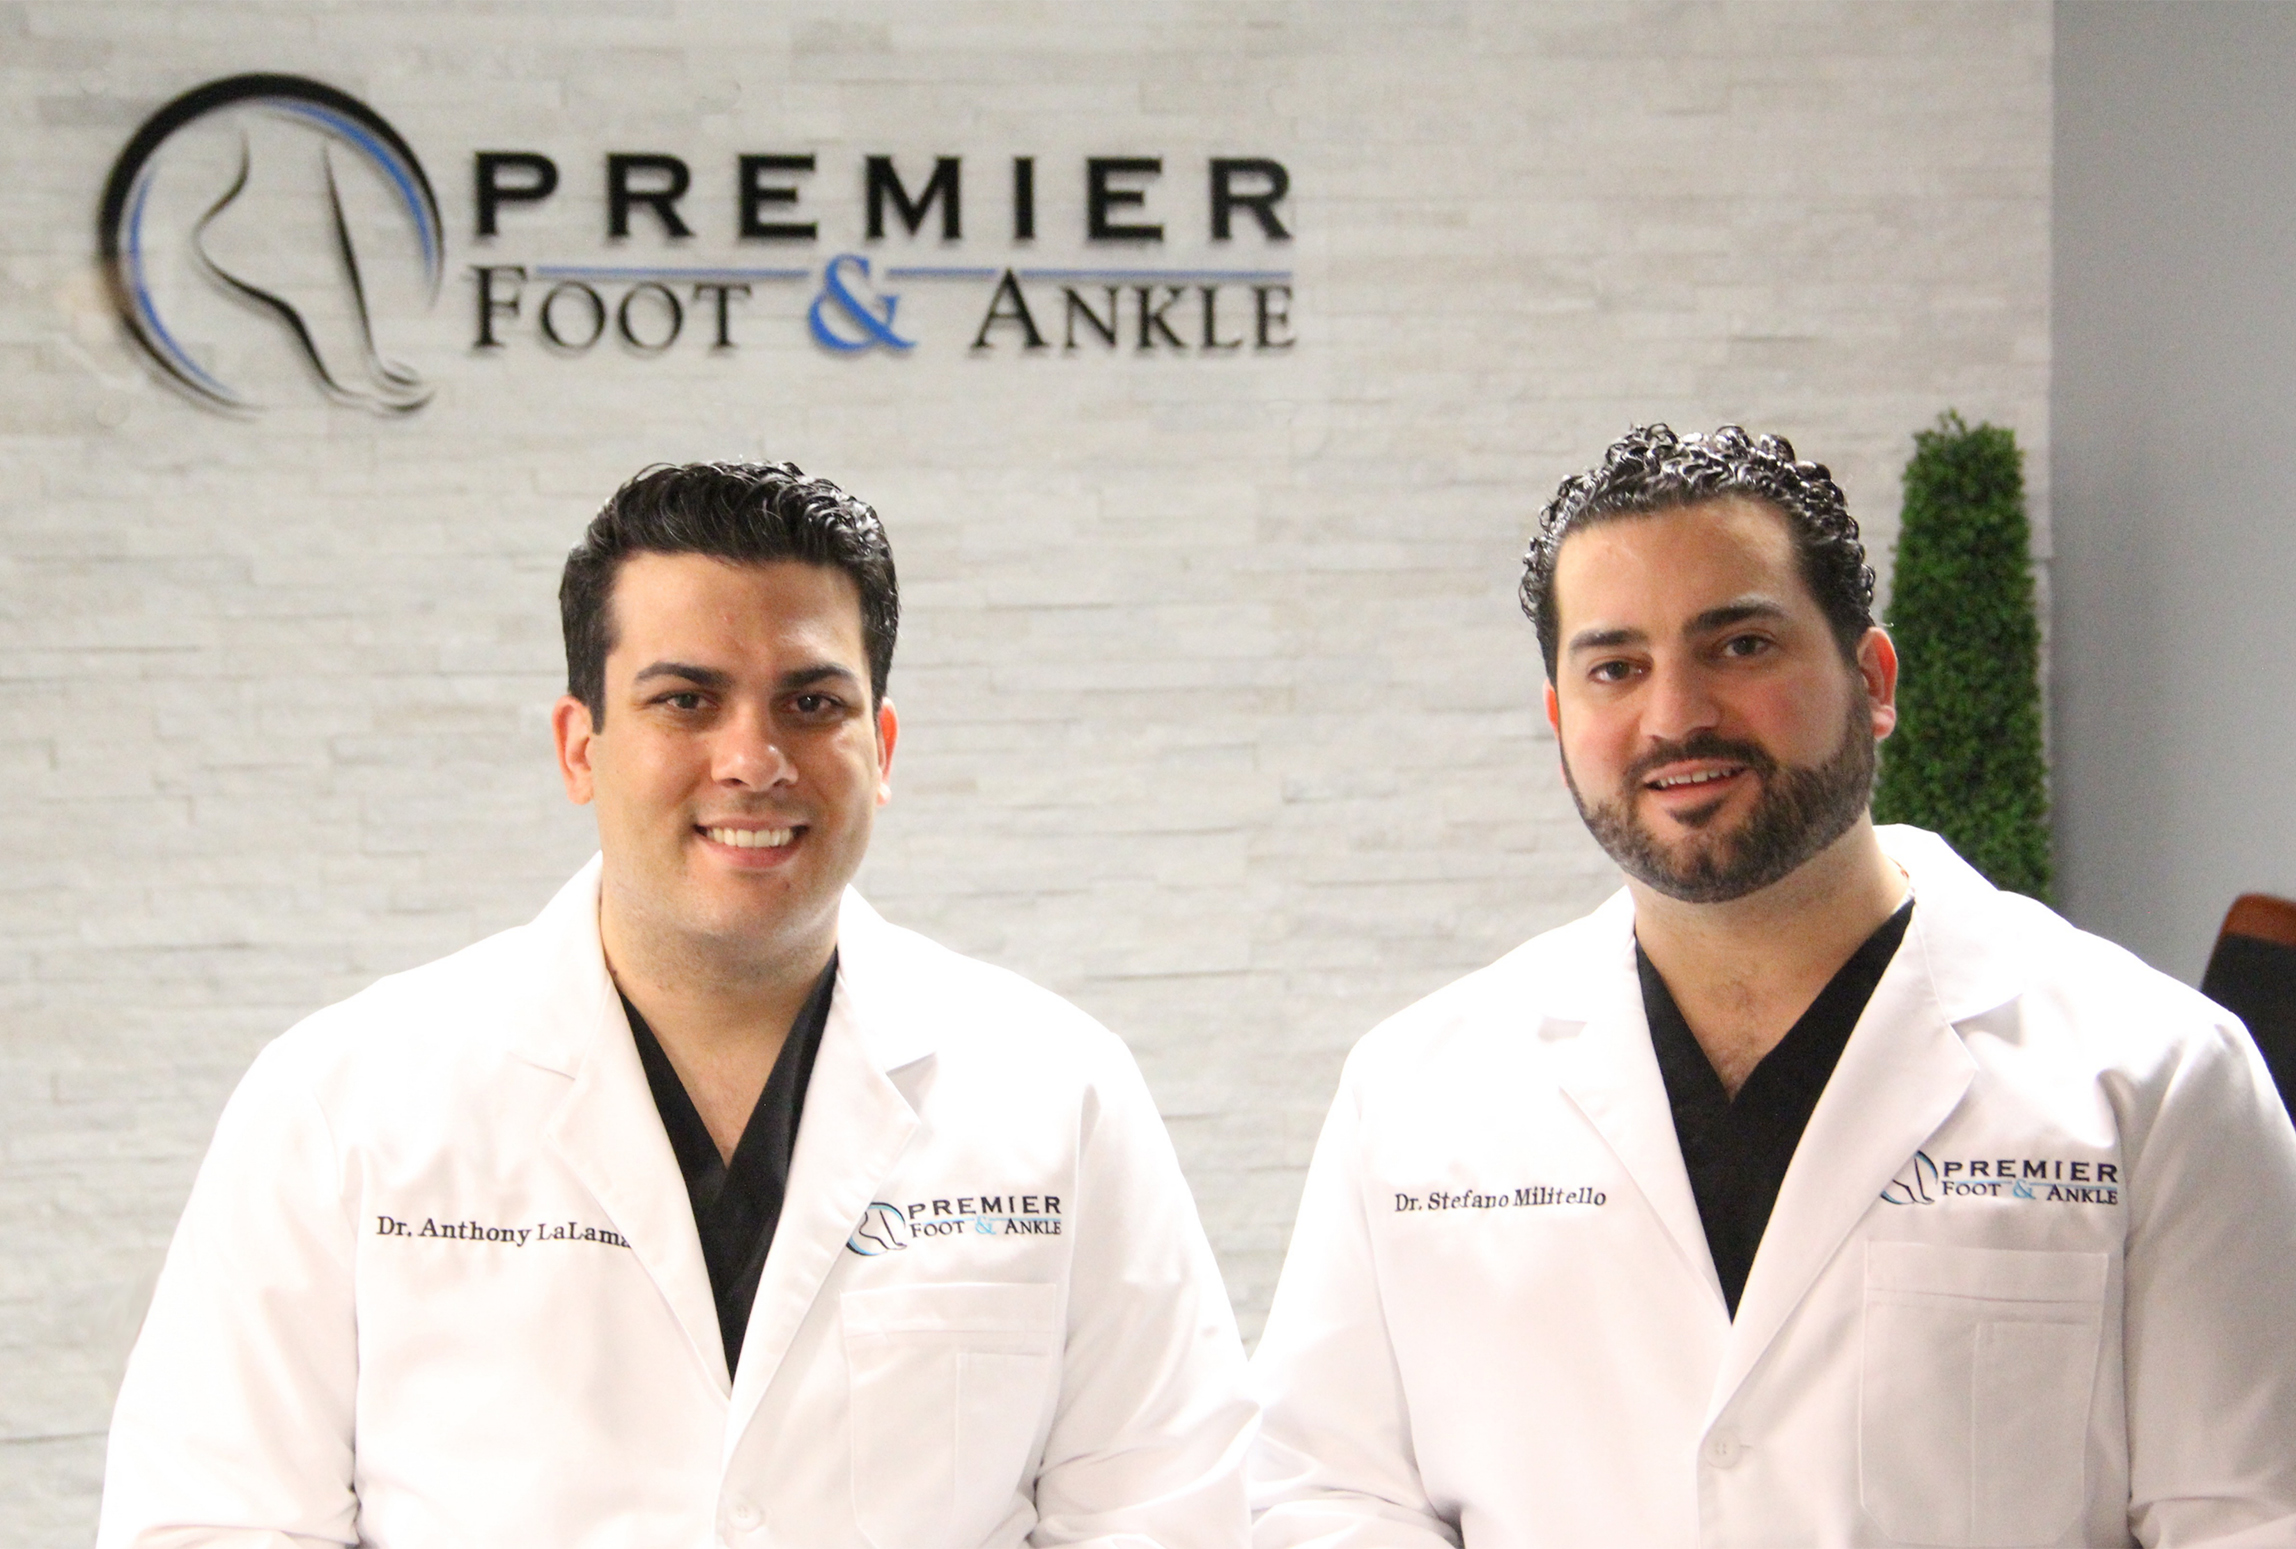 Podiatrists Buck Trend Step Out In Their Own Practice